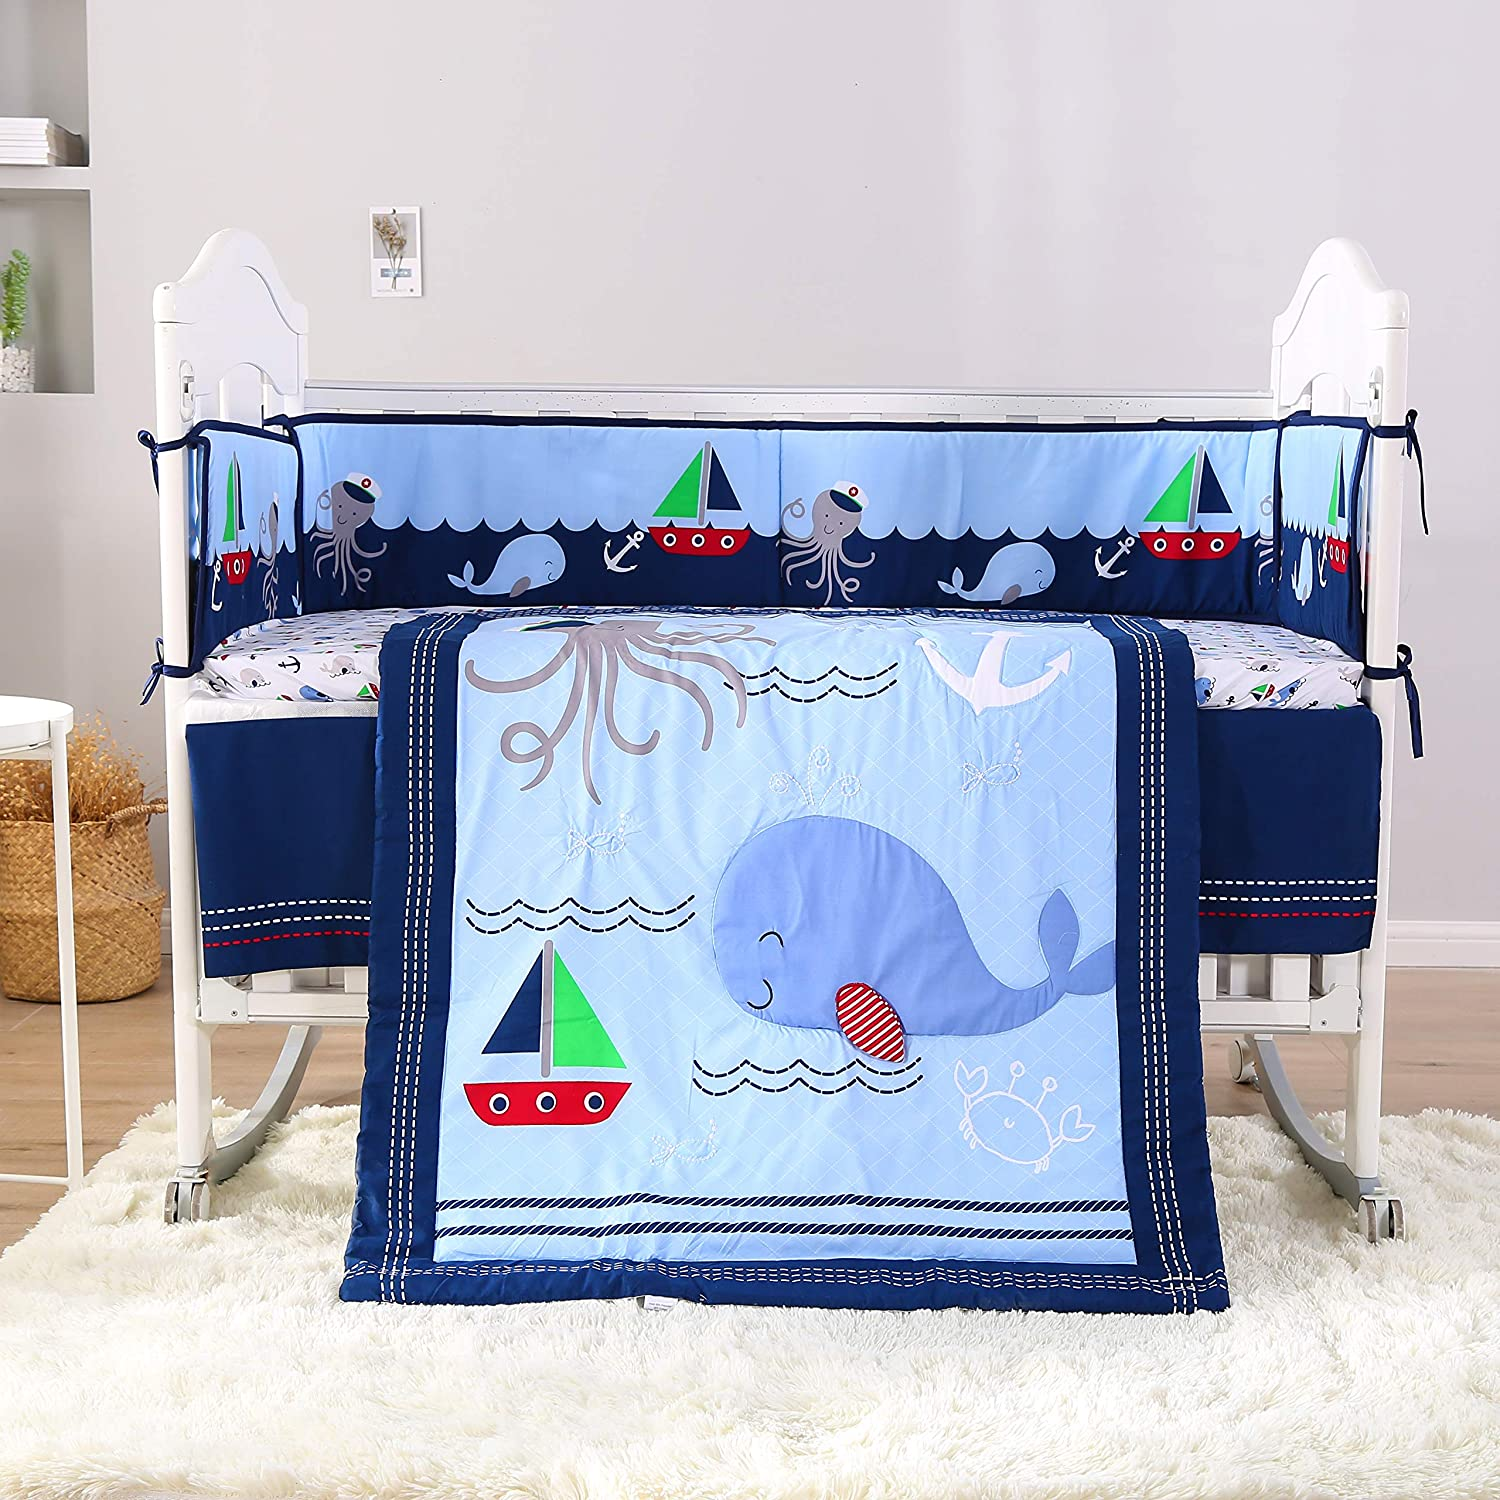 Wowelife Blue Crib Bedding Sets Sea Octopus and Whale Baby Crib Sets 7 Piece(Blue-7 Piece)